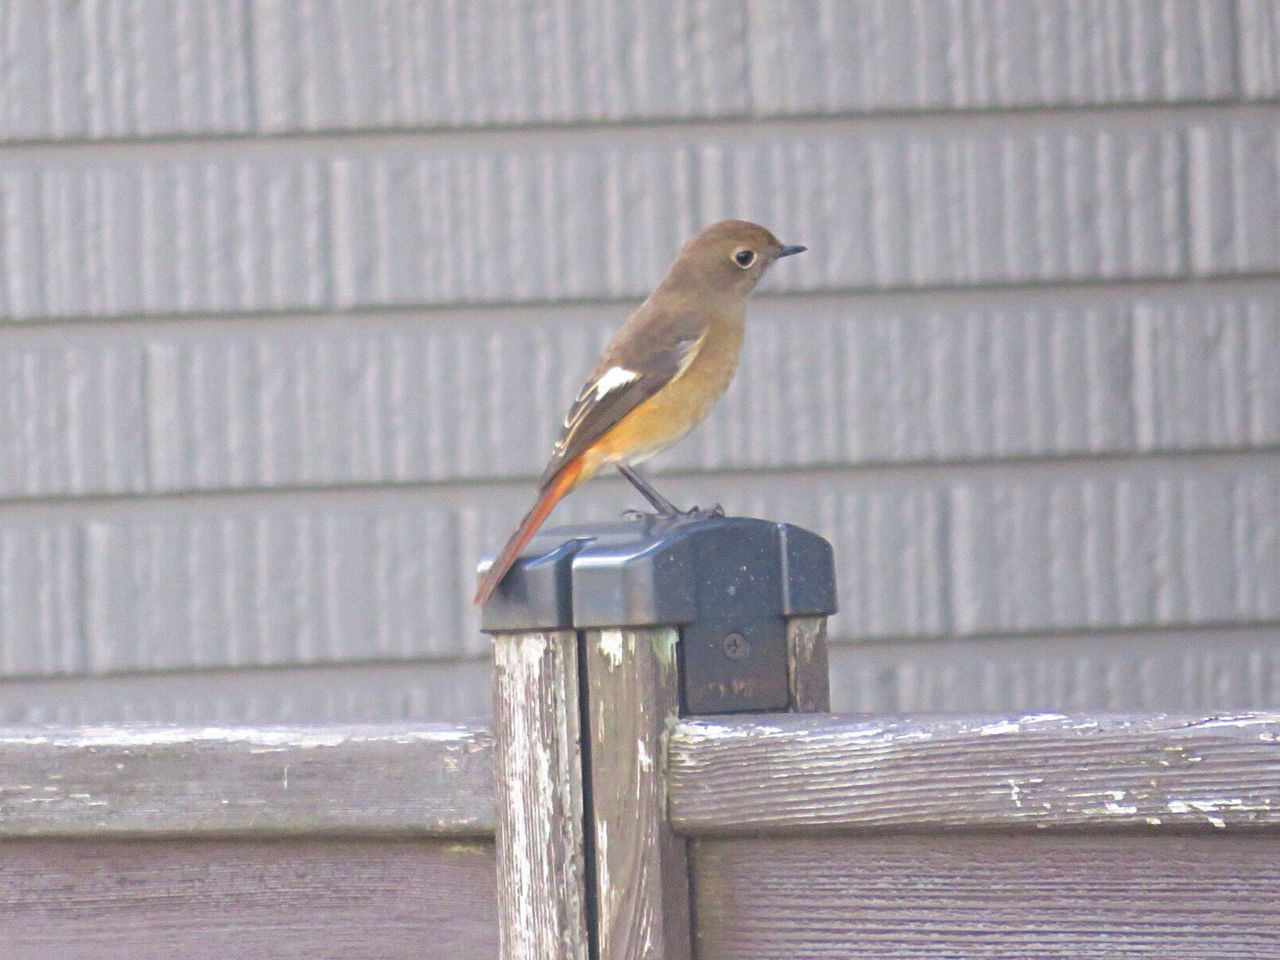 perching, bird, one animal, animals in the wild, animal themes, animal wildlife, outdoors, day, wood - material, no people, close-up, nature